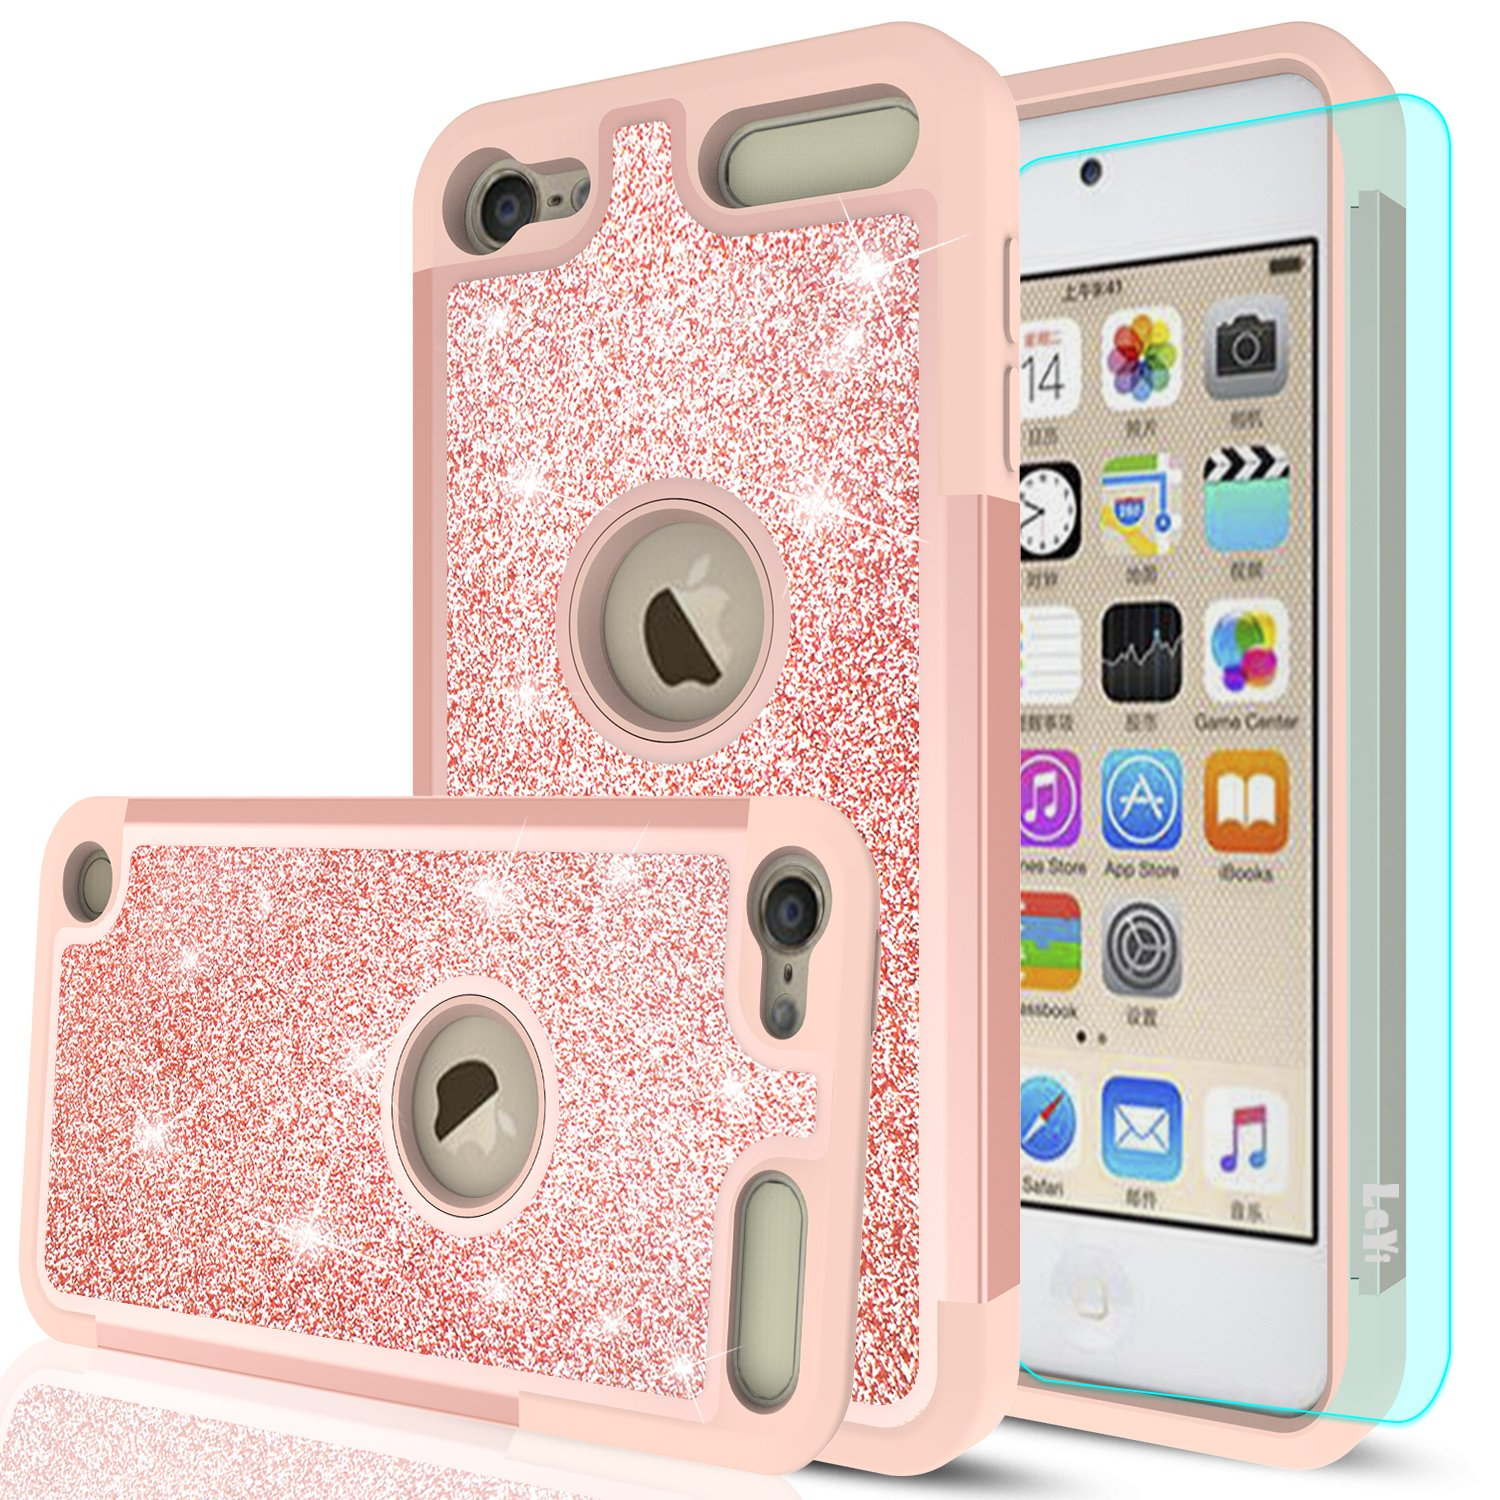 iPod Touch 6 Case, iPod Touch 5 Case with HD Screen Protector,LeYi Glitter Bling Girls Wome Dual Layer Heavy Duty Protective Phone Case for Apple iPod Touch 6th / 5th Generation TP Rose Gold